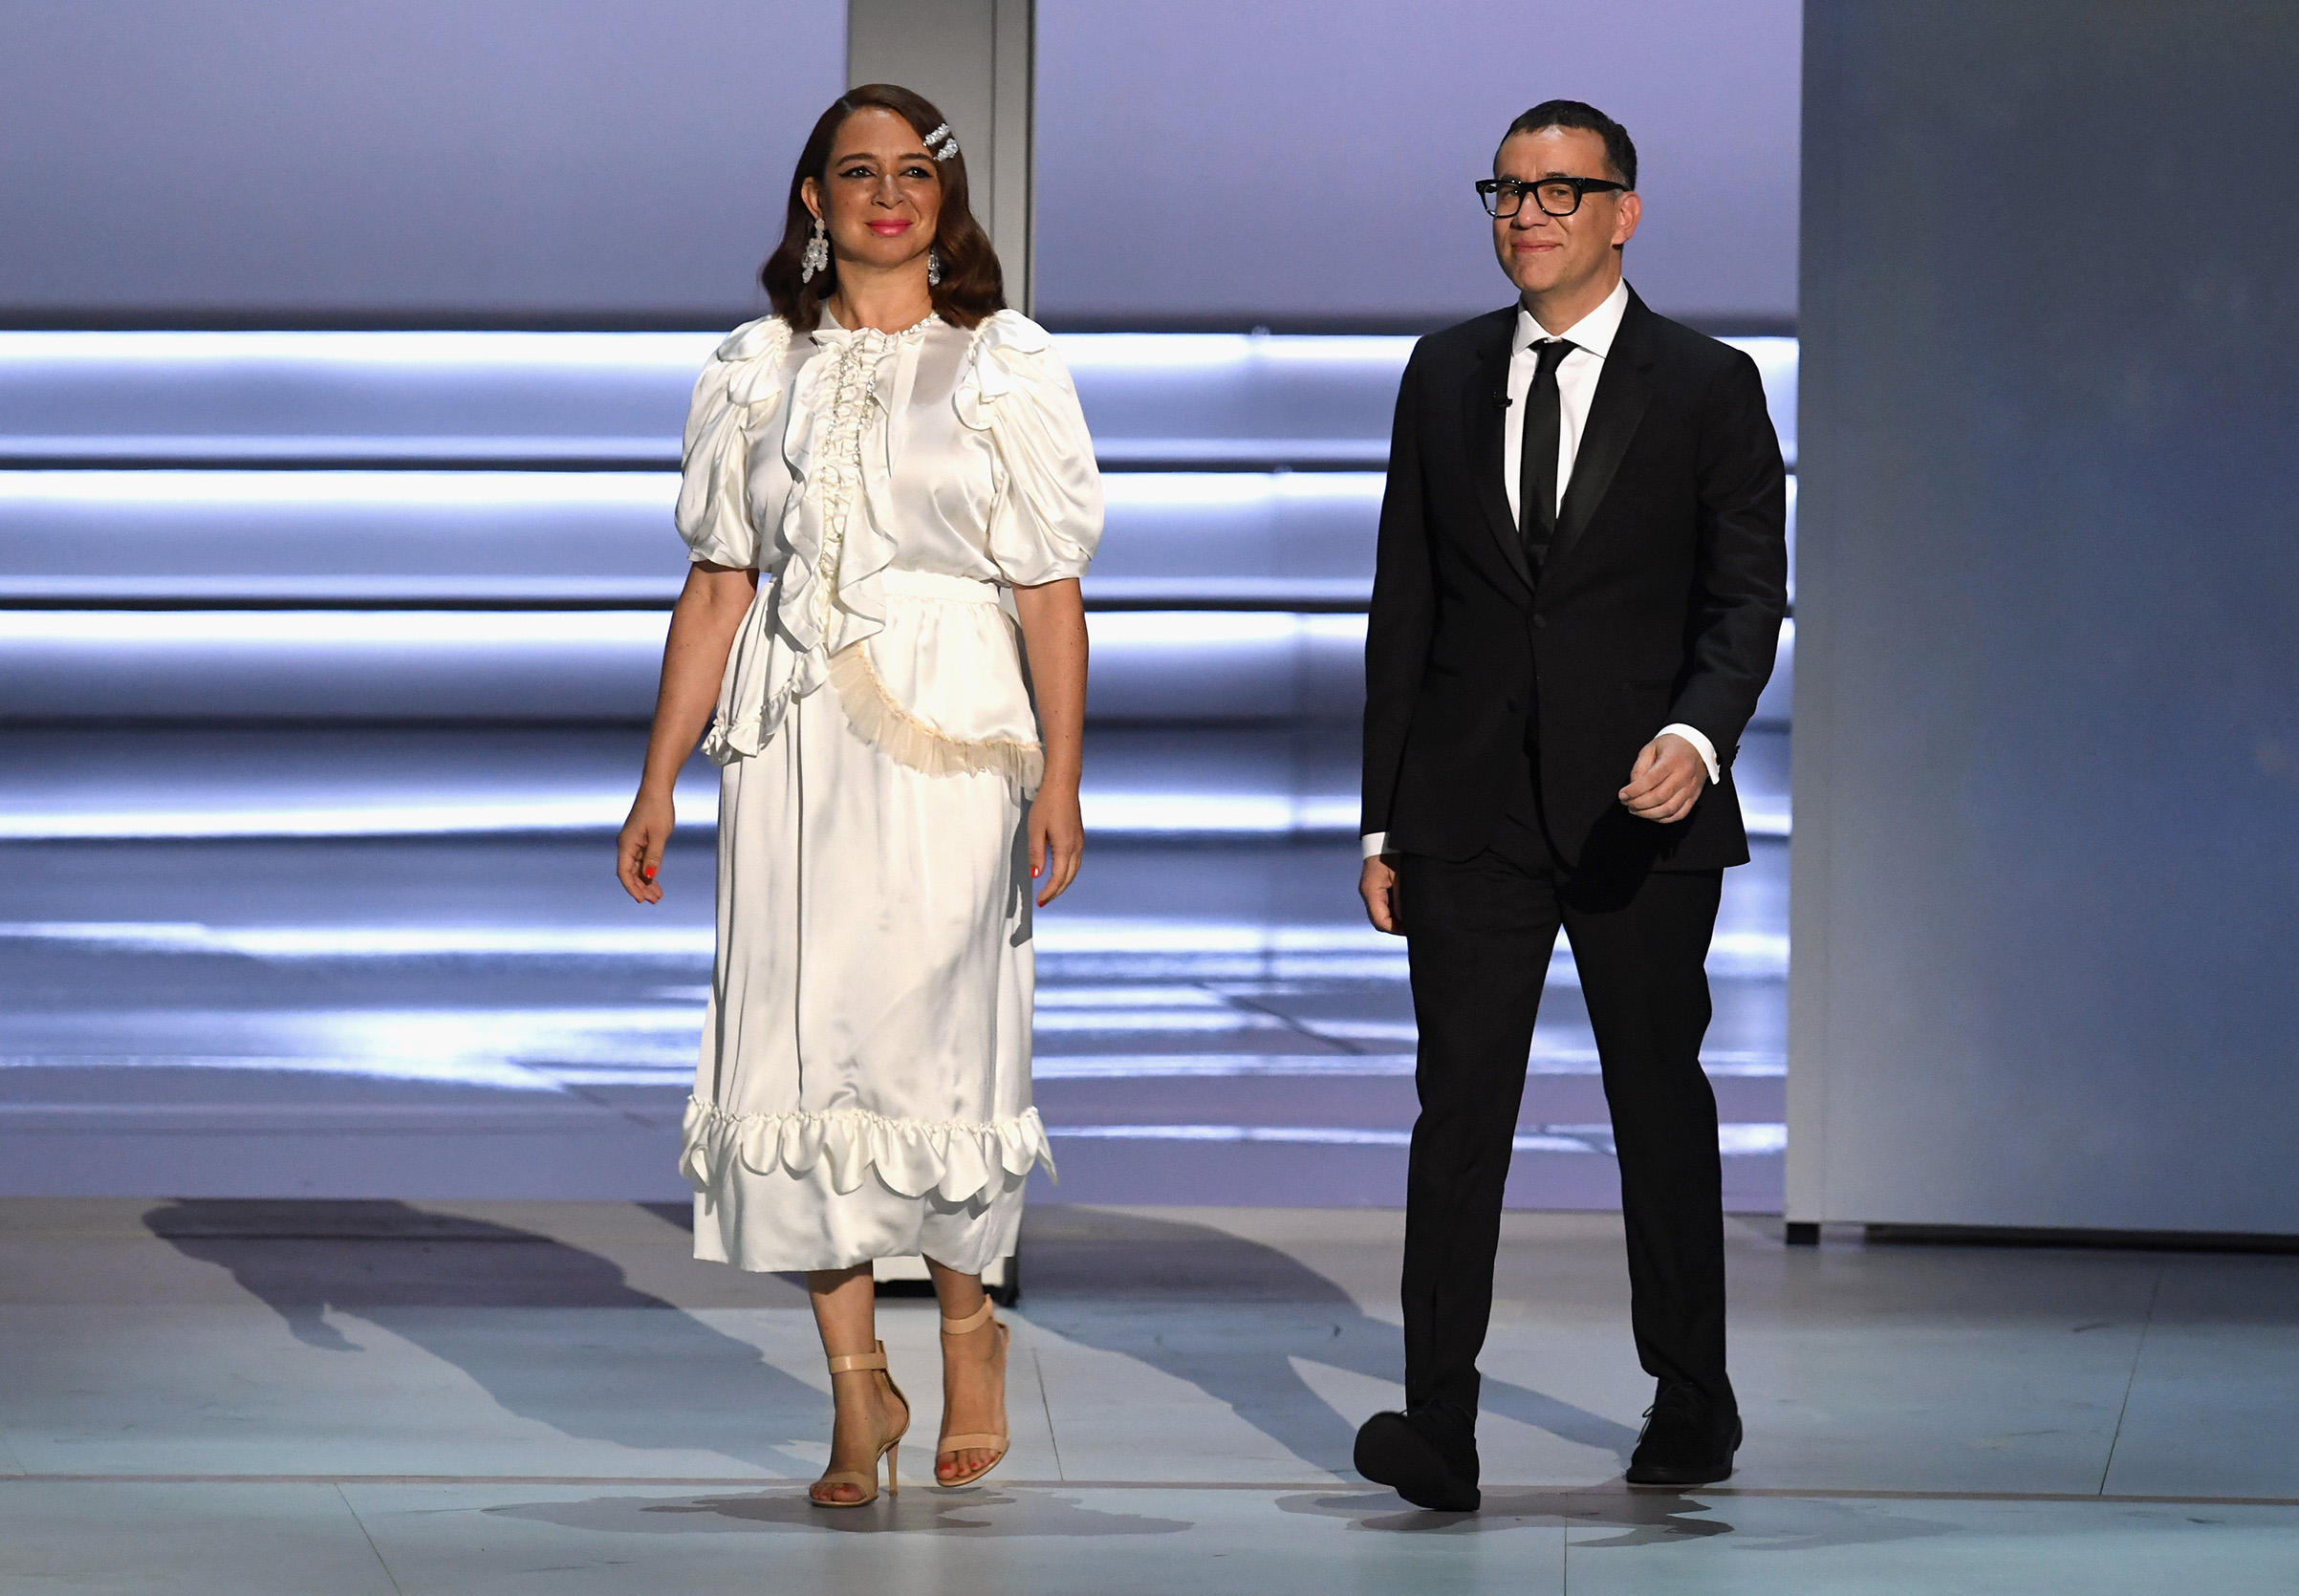 Maya Rudolph and Fred Armisen walk onstage during the 70th Emmy Awards at Microsoft Theater on Sept. 17, 2018 in Los Angeles.